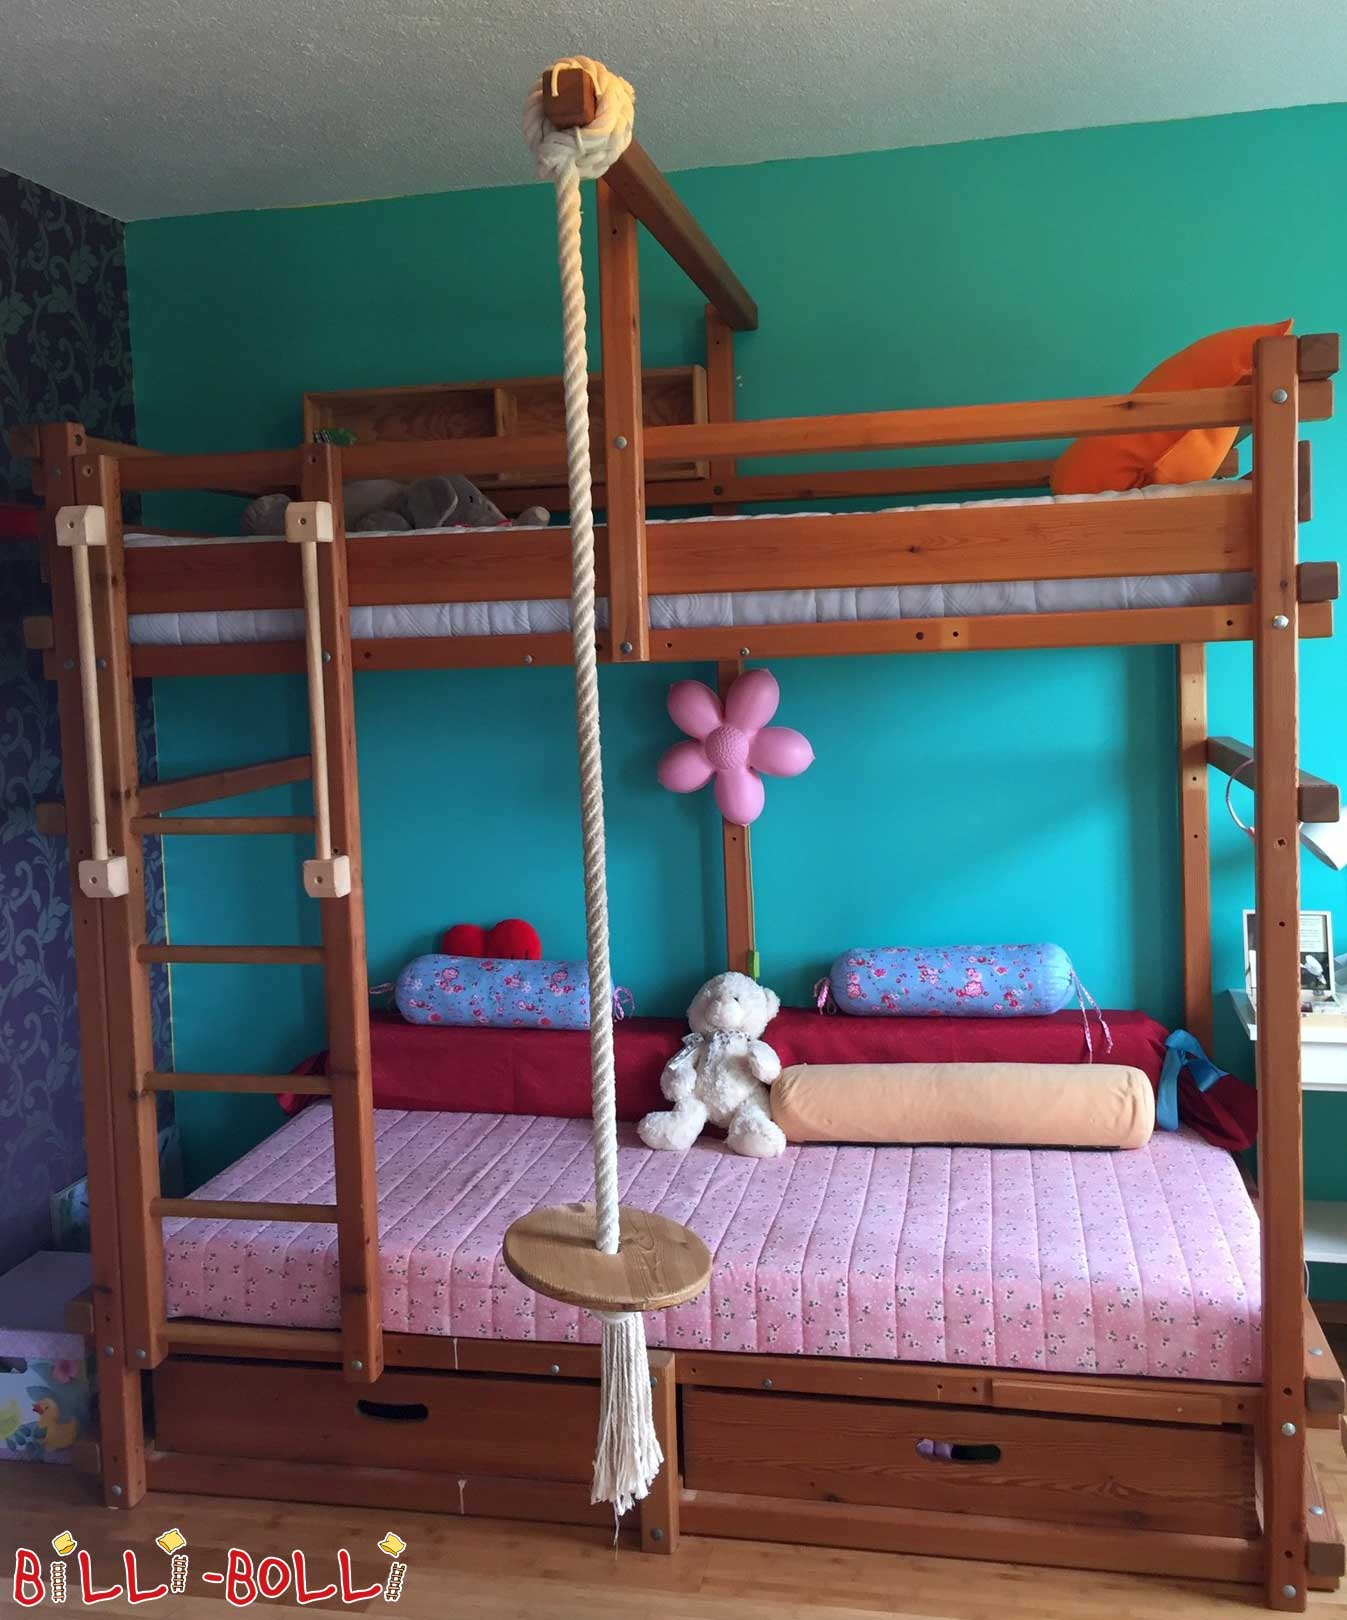 Gullibo bunk bed, 90 x 200 cm (second hand bunk bed)